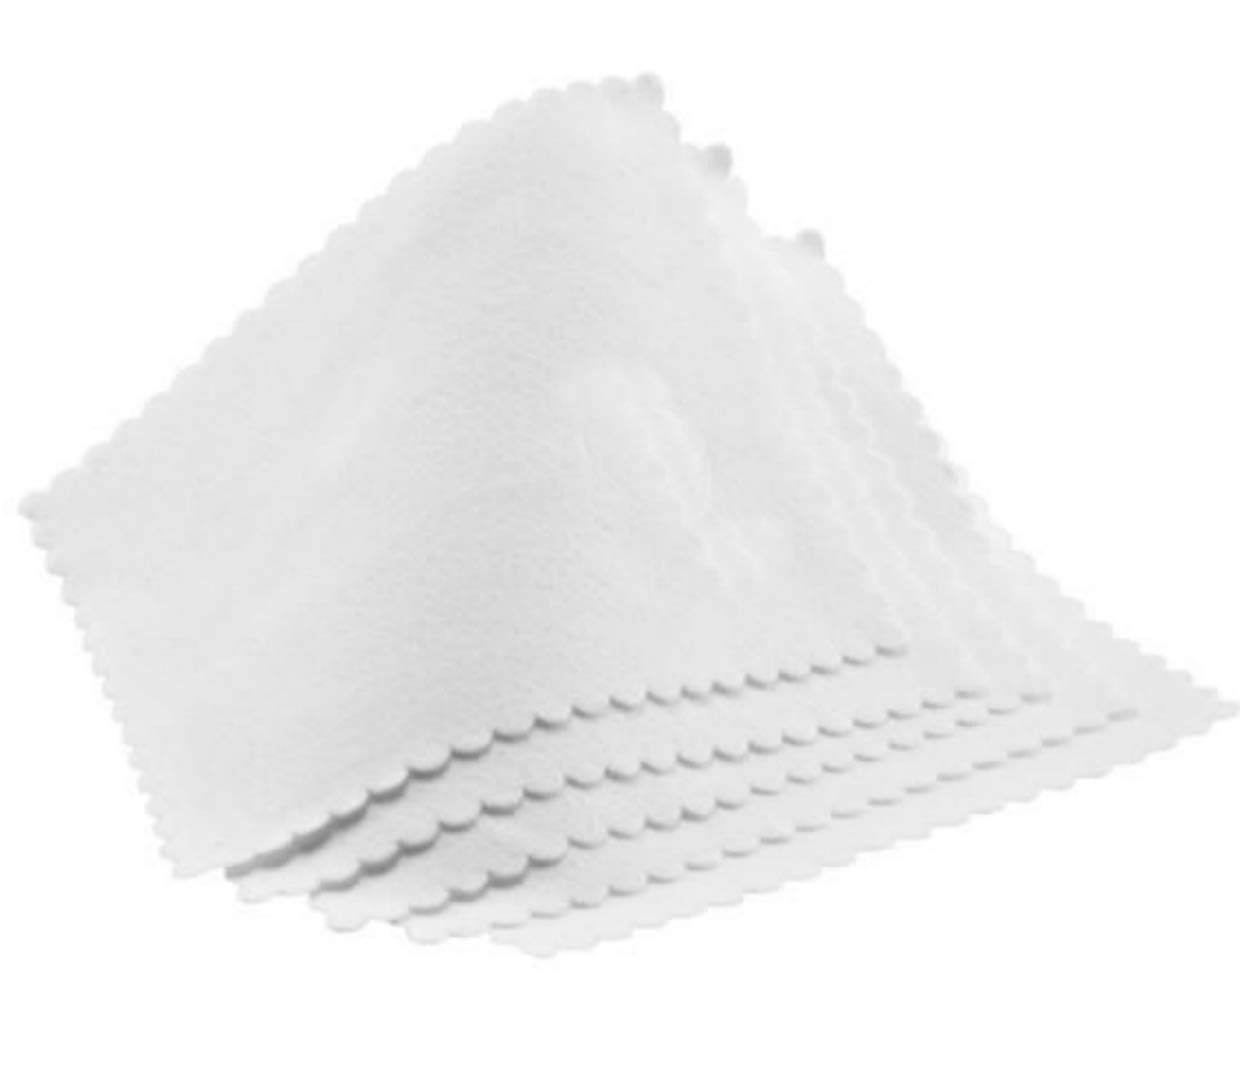 White Suede Premium Optical 6''x 6'' Microfiber Cleaning Cloths - for Screens, Lenses, Glasses, Apple iPads and More (50 Pack)